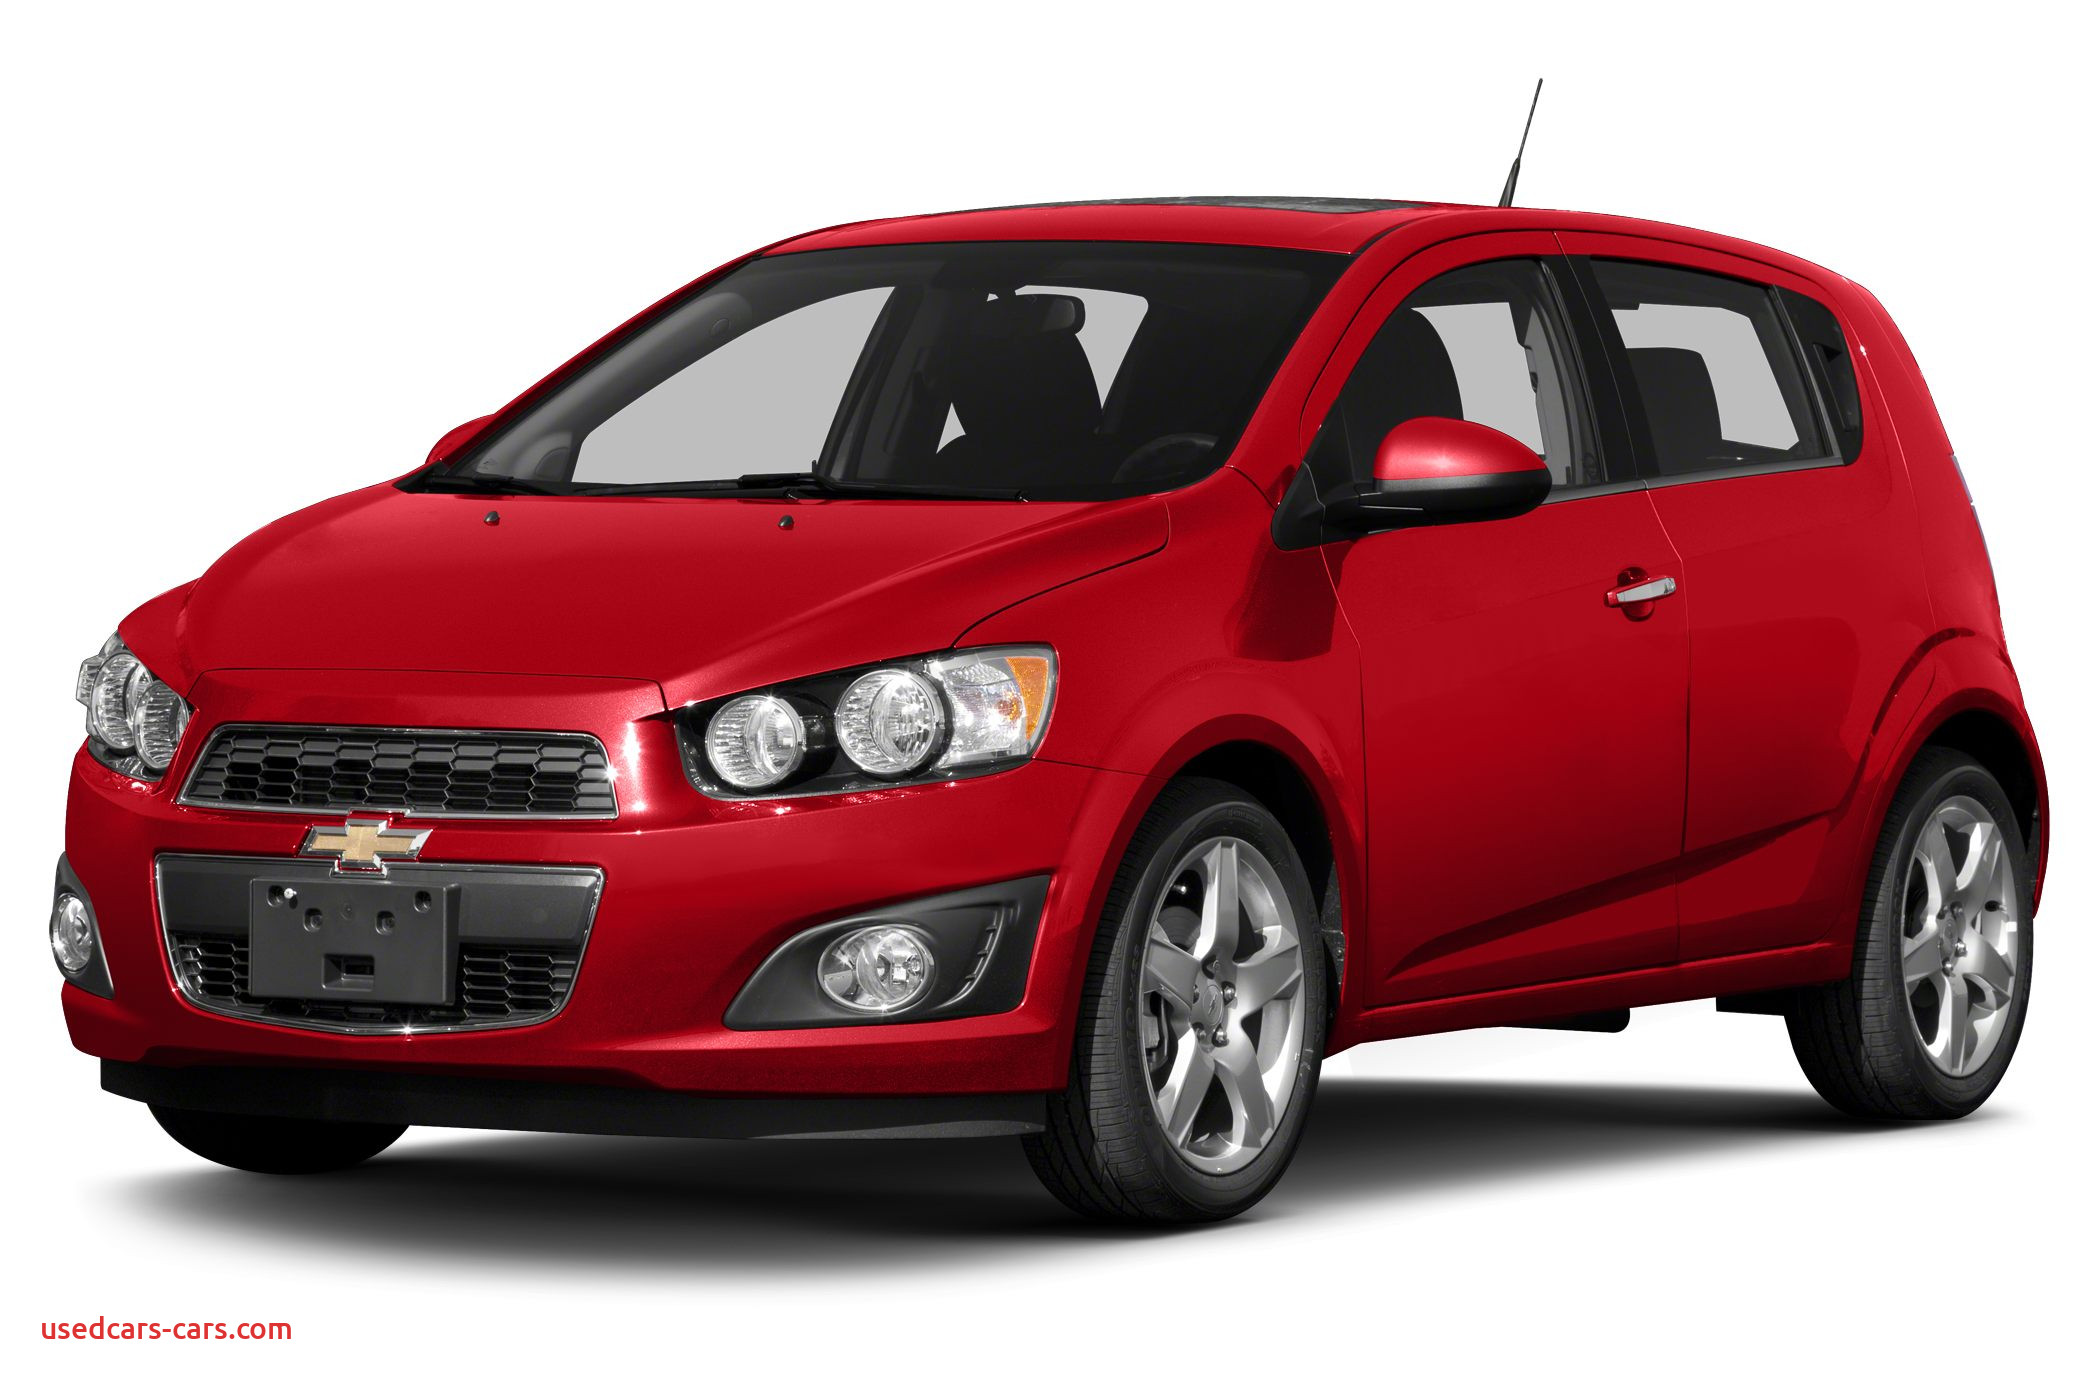 2015 Chevrolet sonic Hatchback Lovely 2015 Chevrolet sonic Price Photos Reviews Features